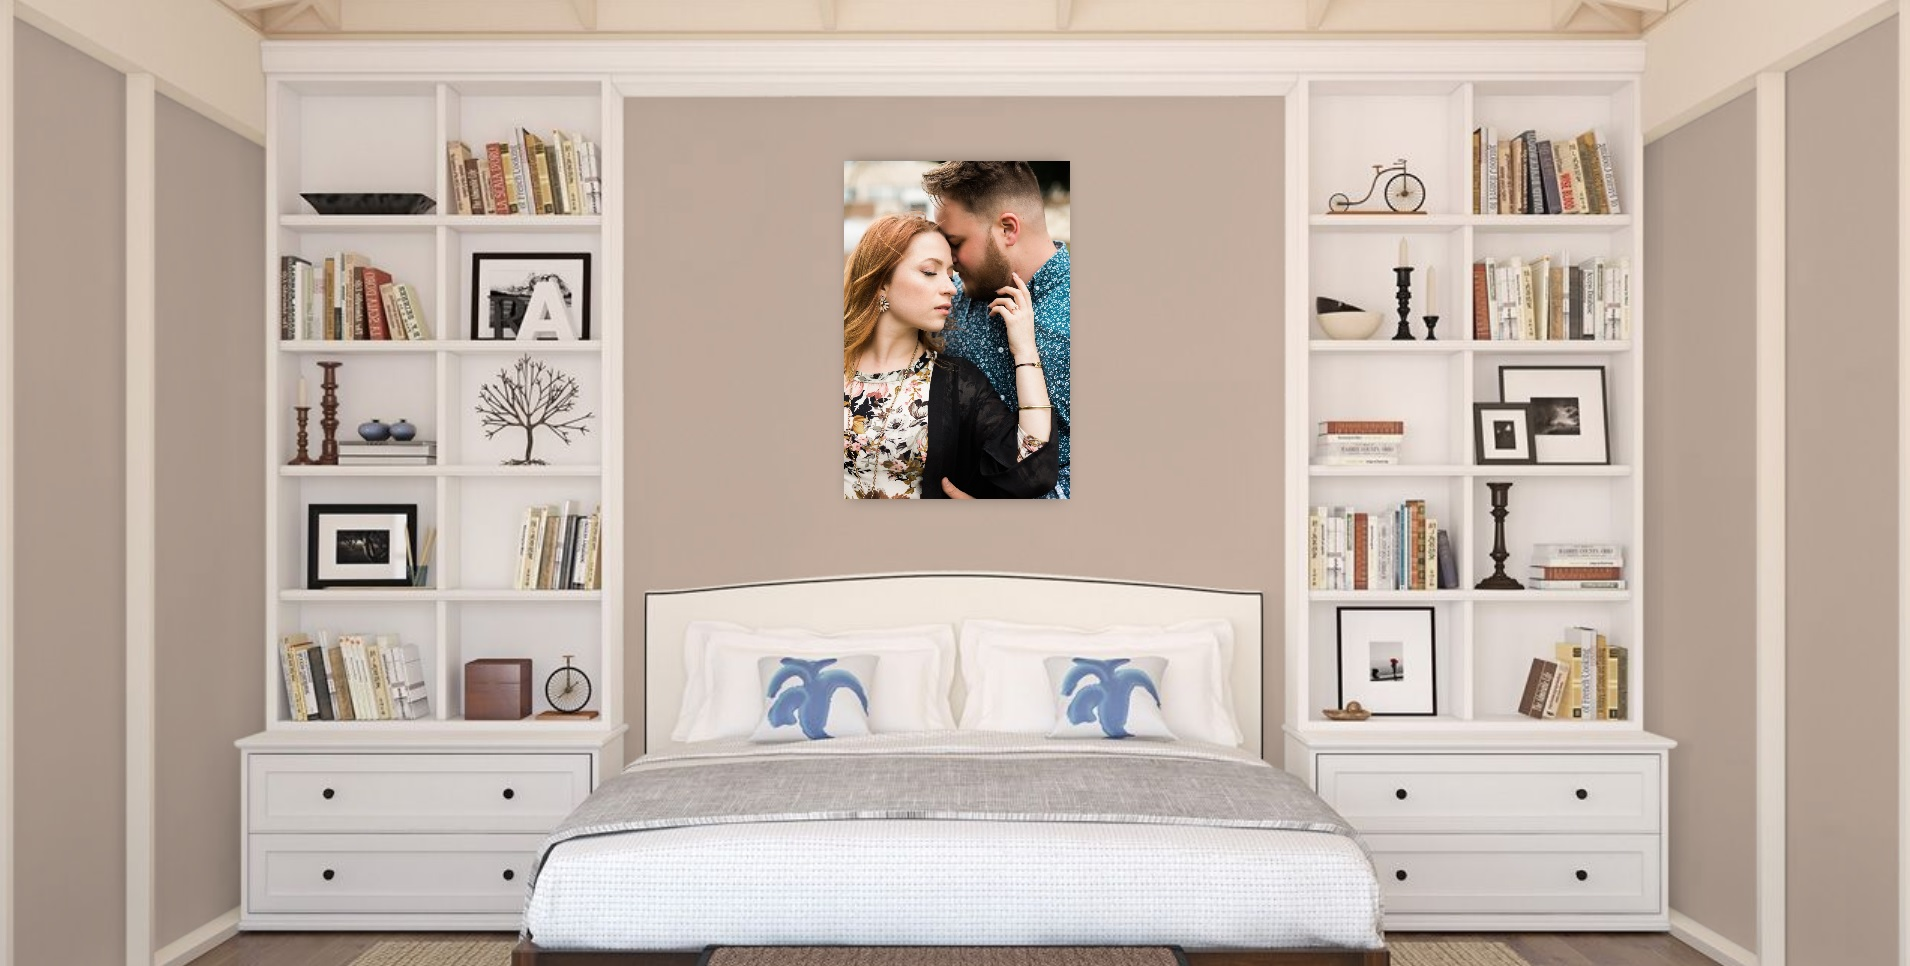 engagement wall display.jpg